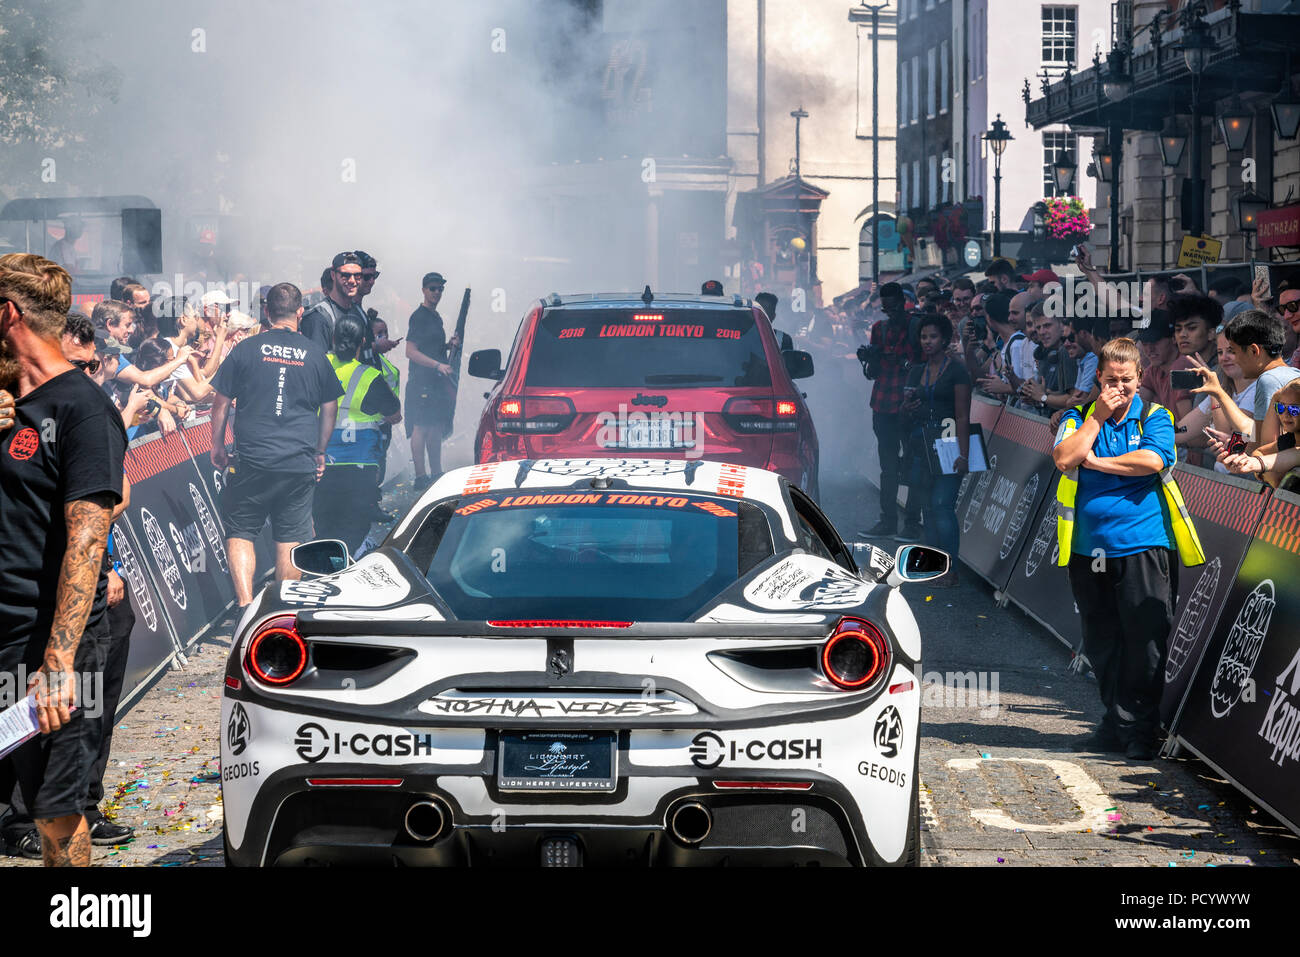 Bullrush Rally Burns Supercar Rubber For A Good Cause Bullrush Rally Burns Supercar Rubber For A Good Cause new photo